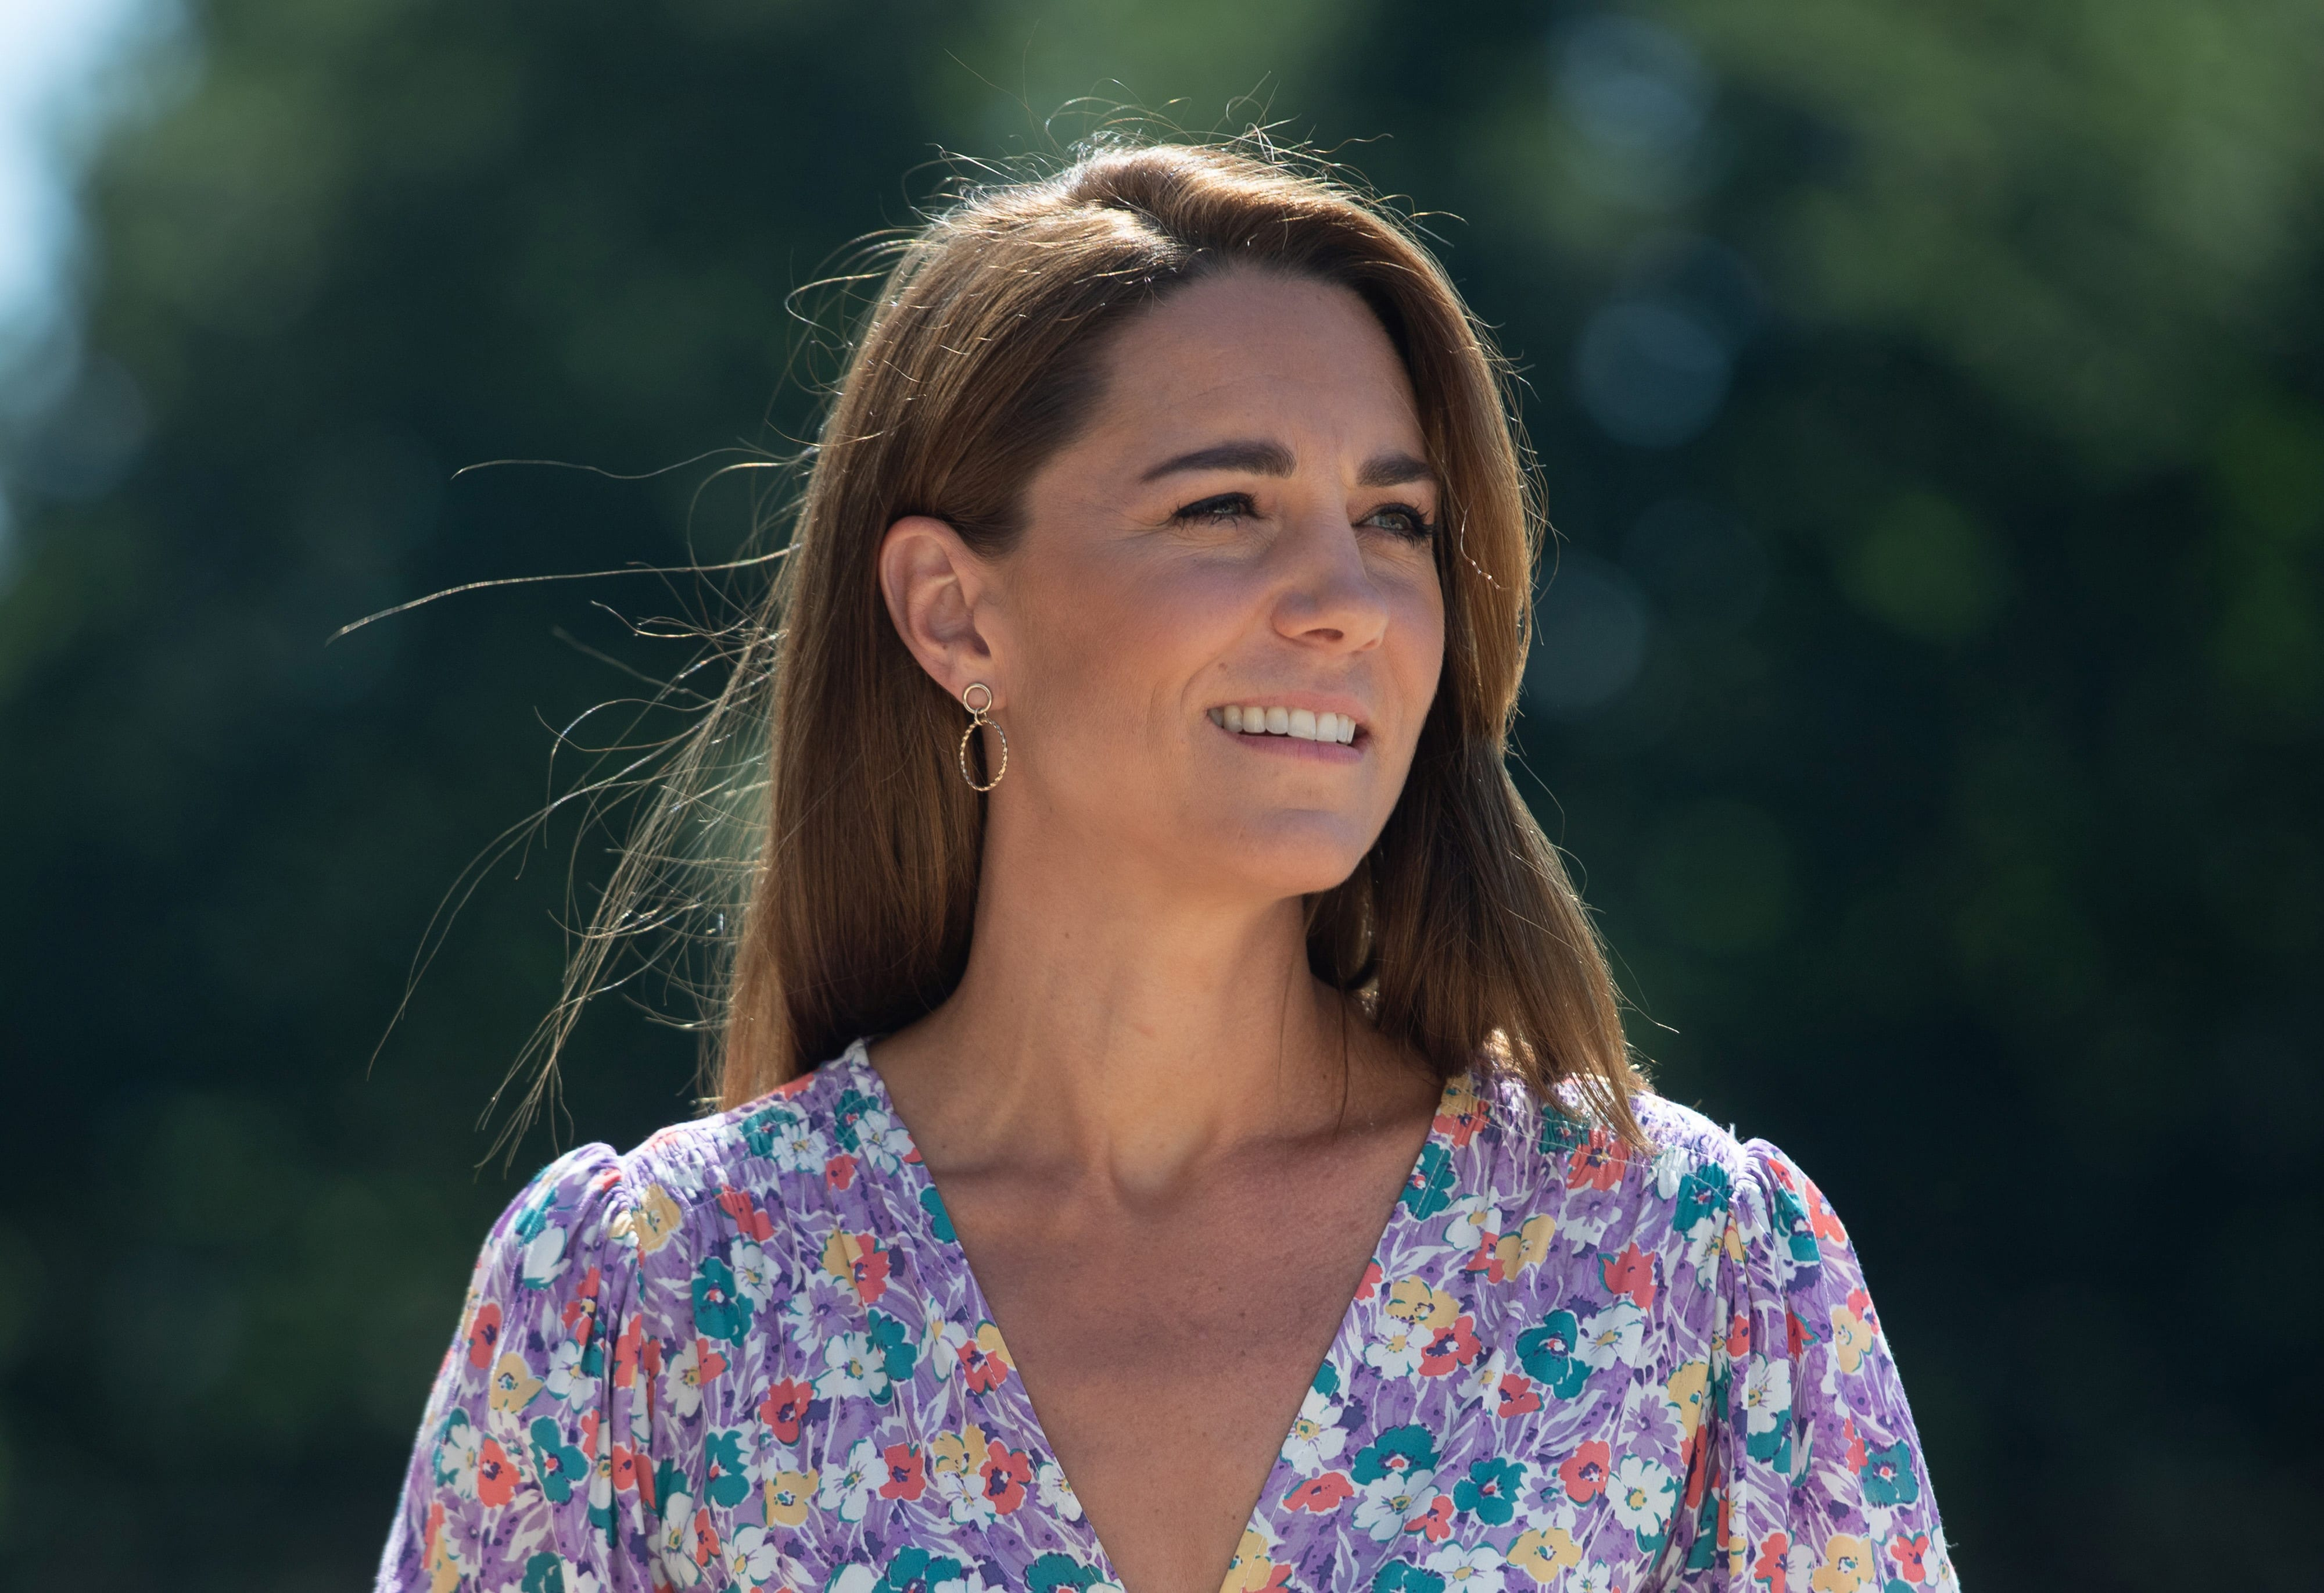 Kate Middleton Is Upset By the New 'Finding Freedom' Claims